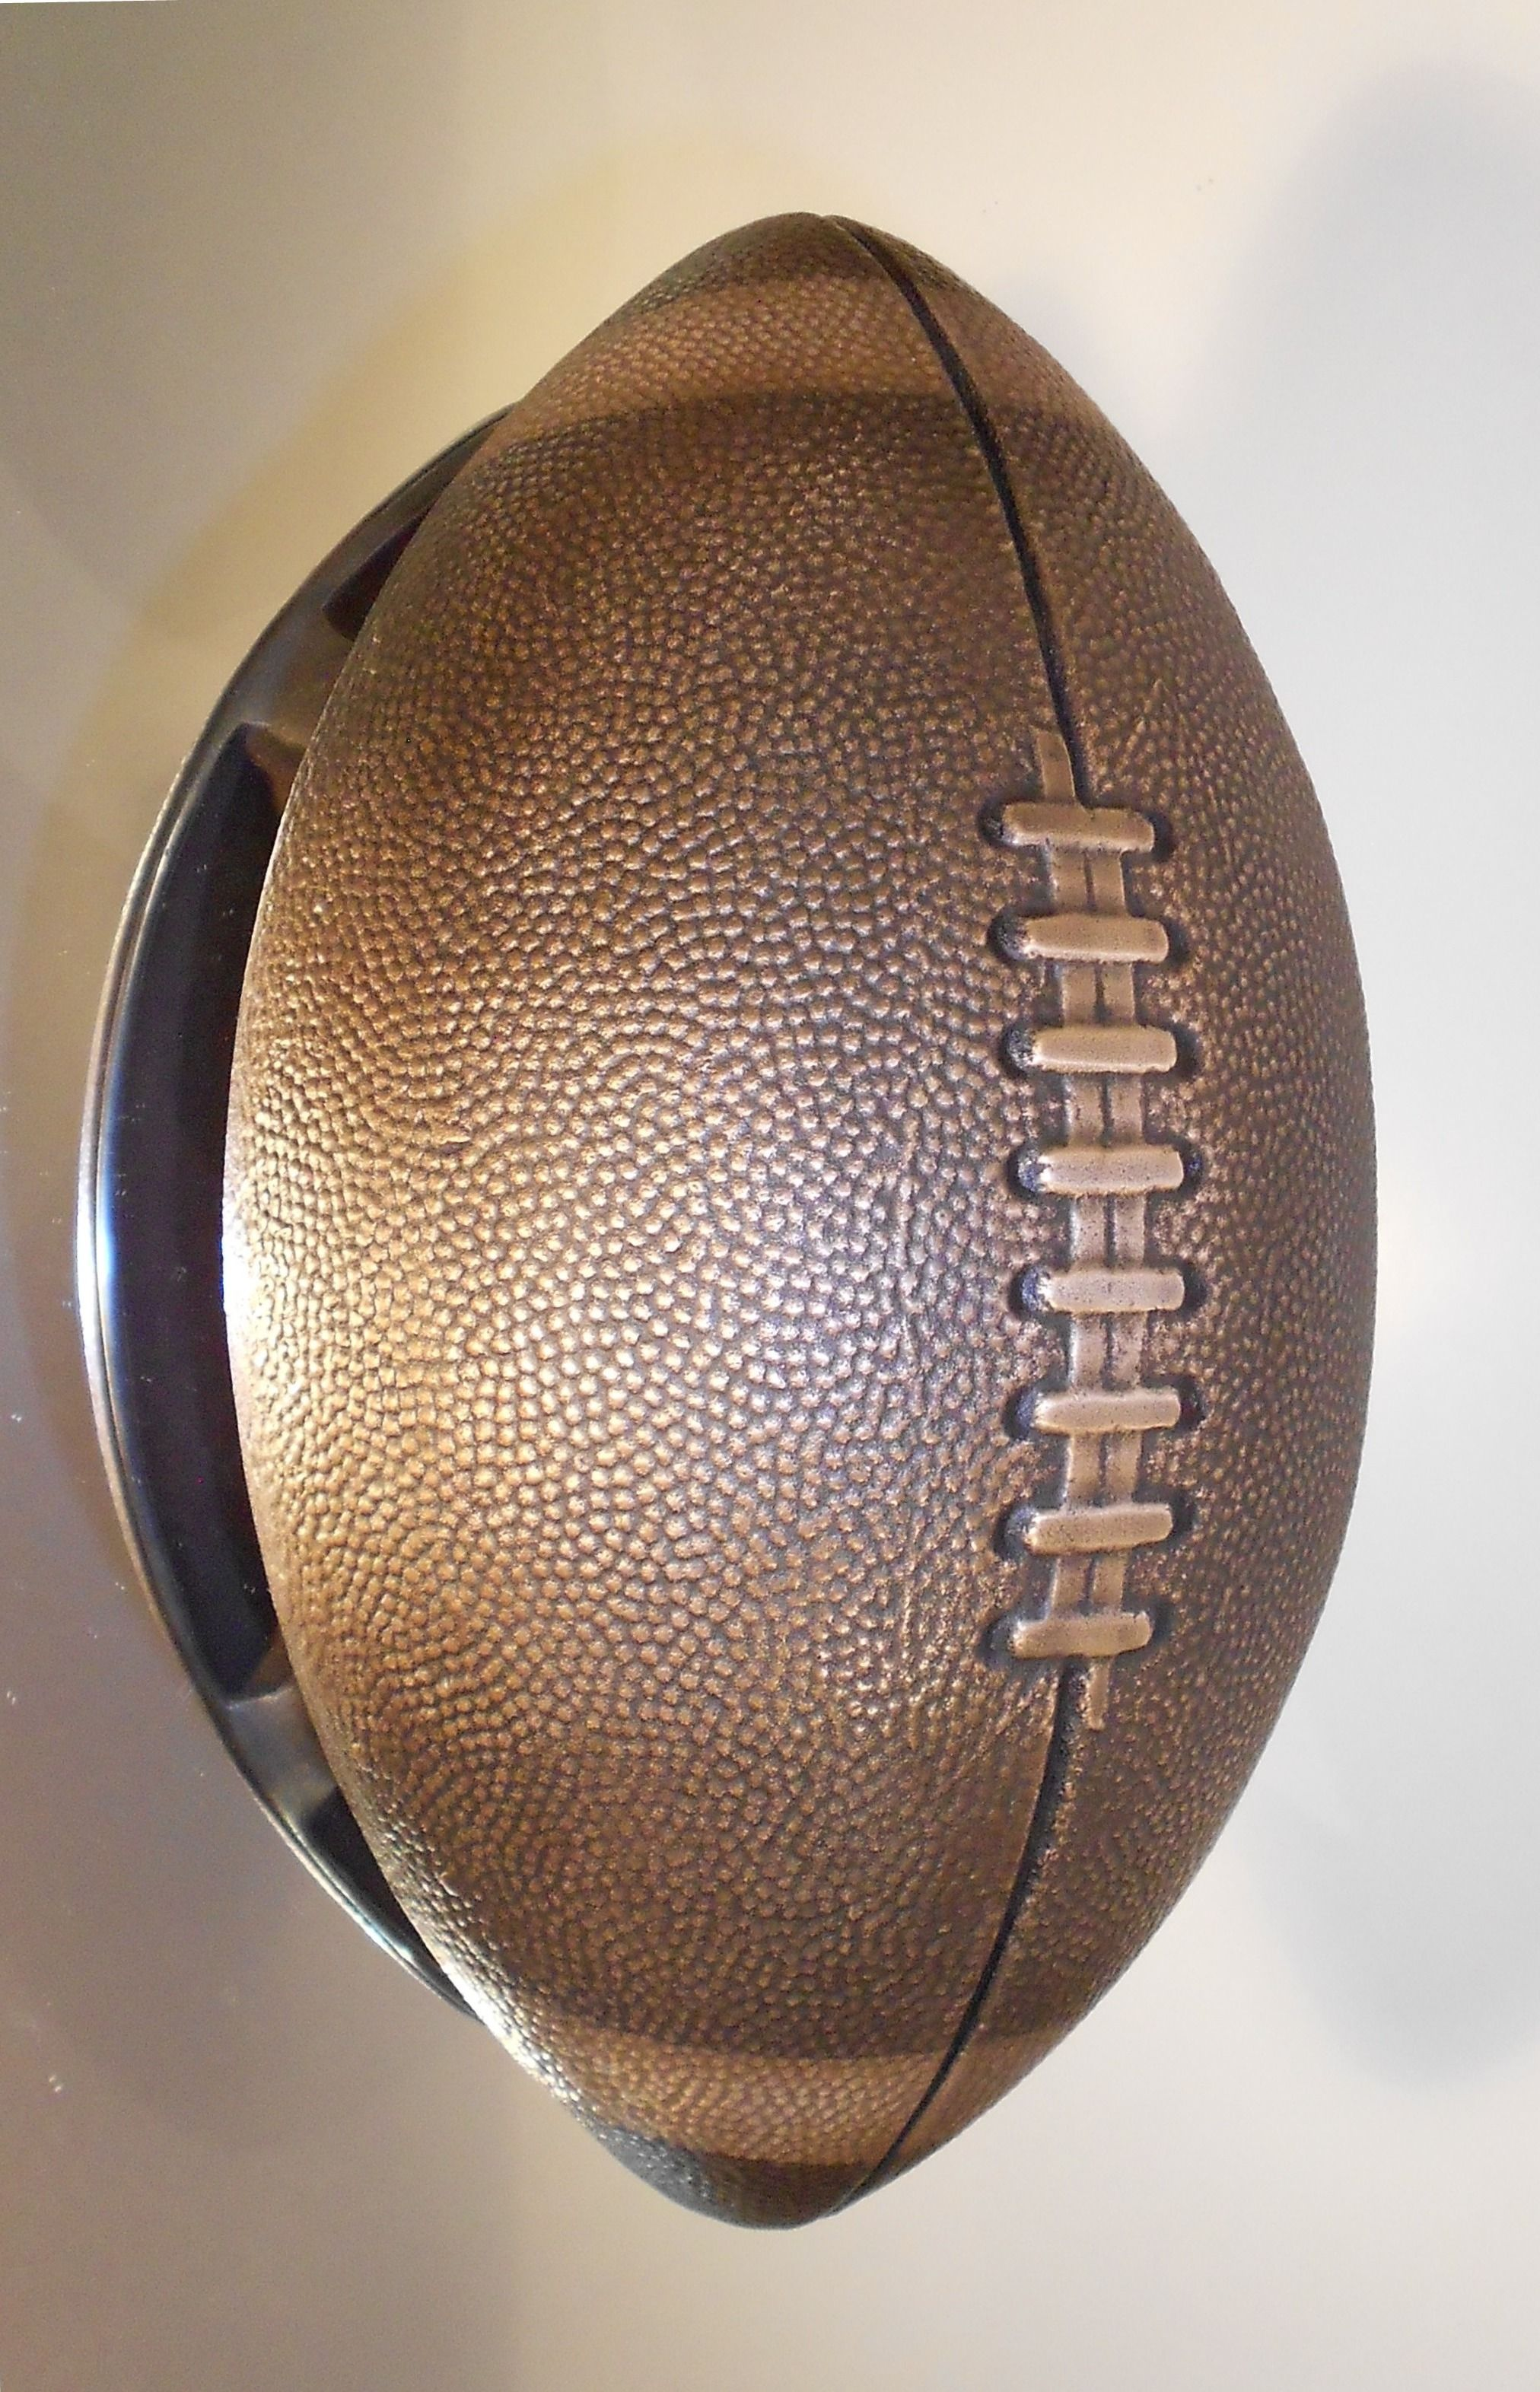 Football door pull, cast in bronze | custom door handles and pulls ...